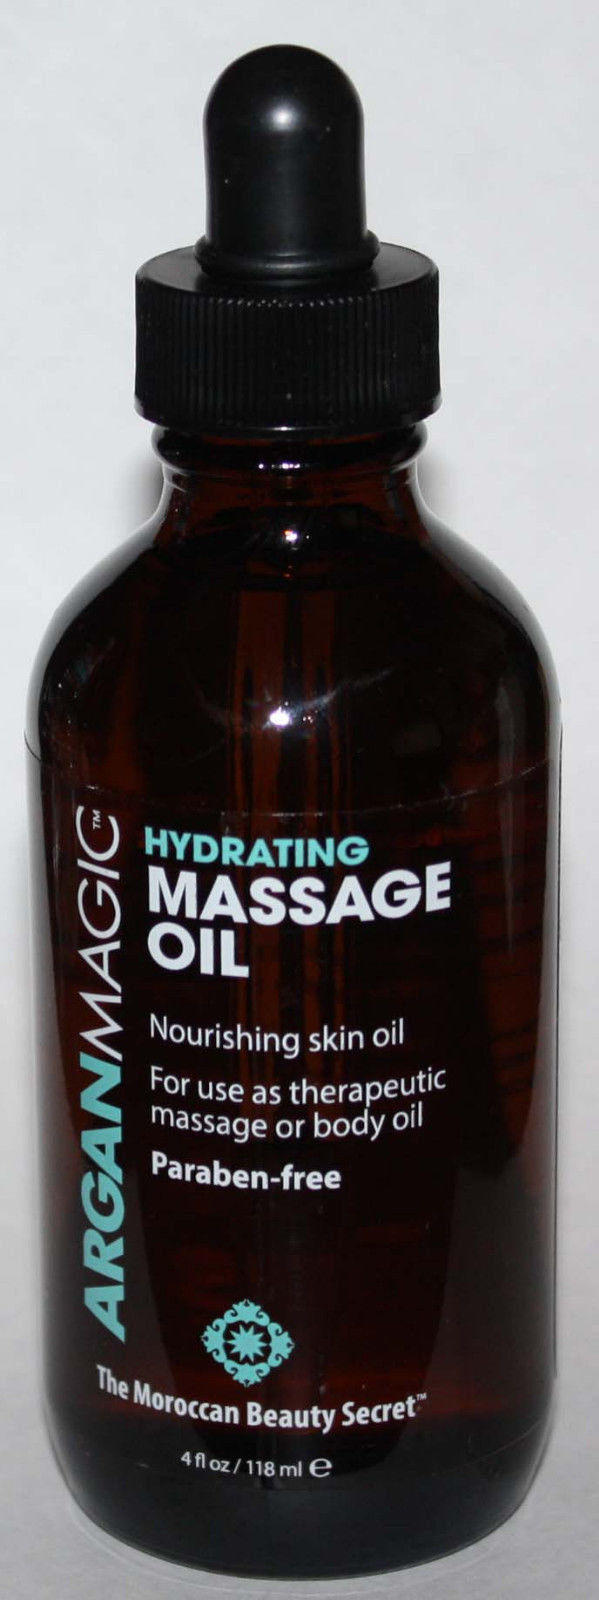 Argan Magic Hydrating Massage Oil * The Moroccan Beauty Secret 4 oz 10817